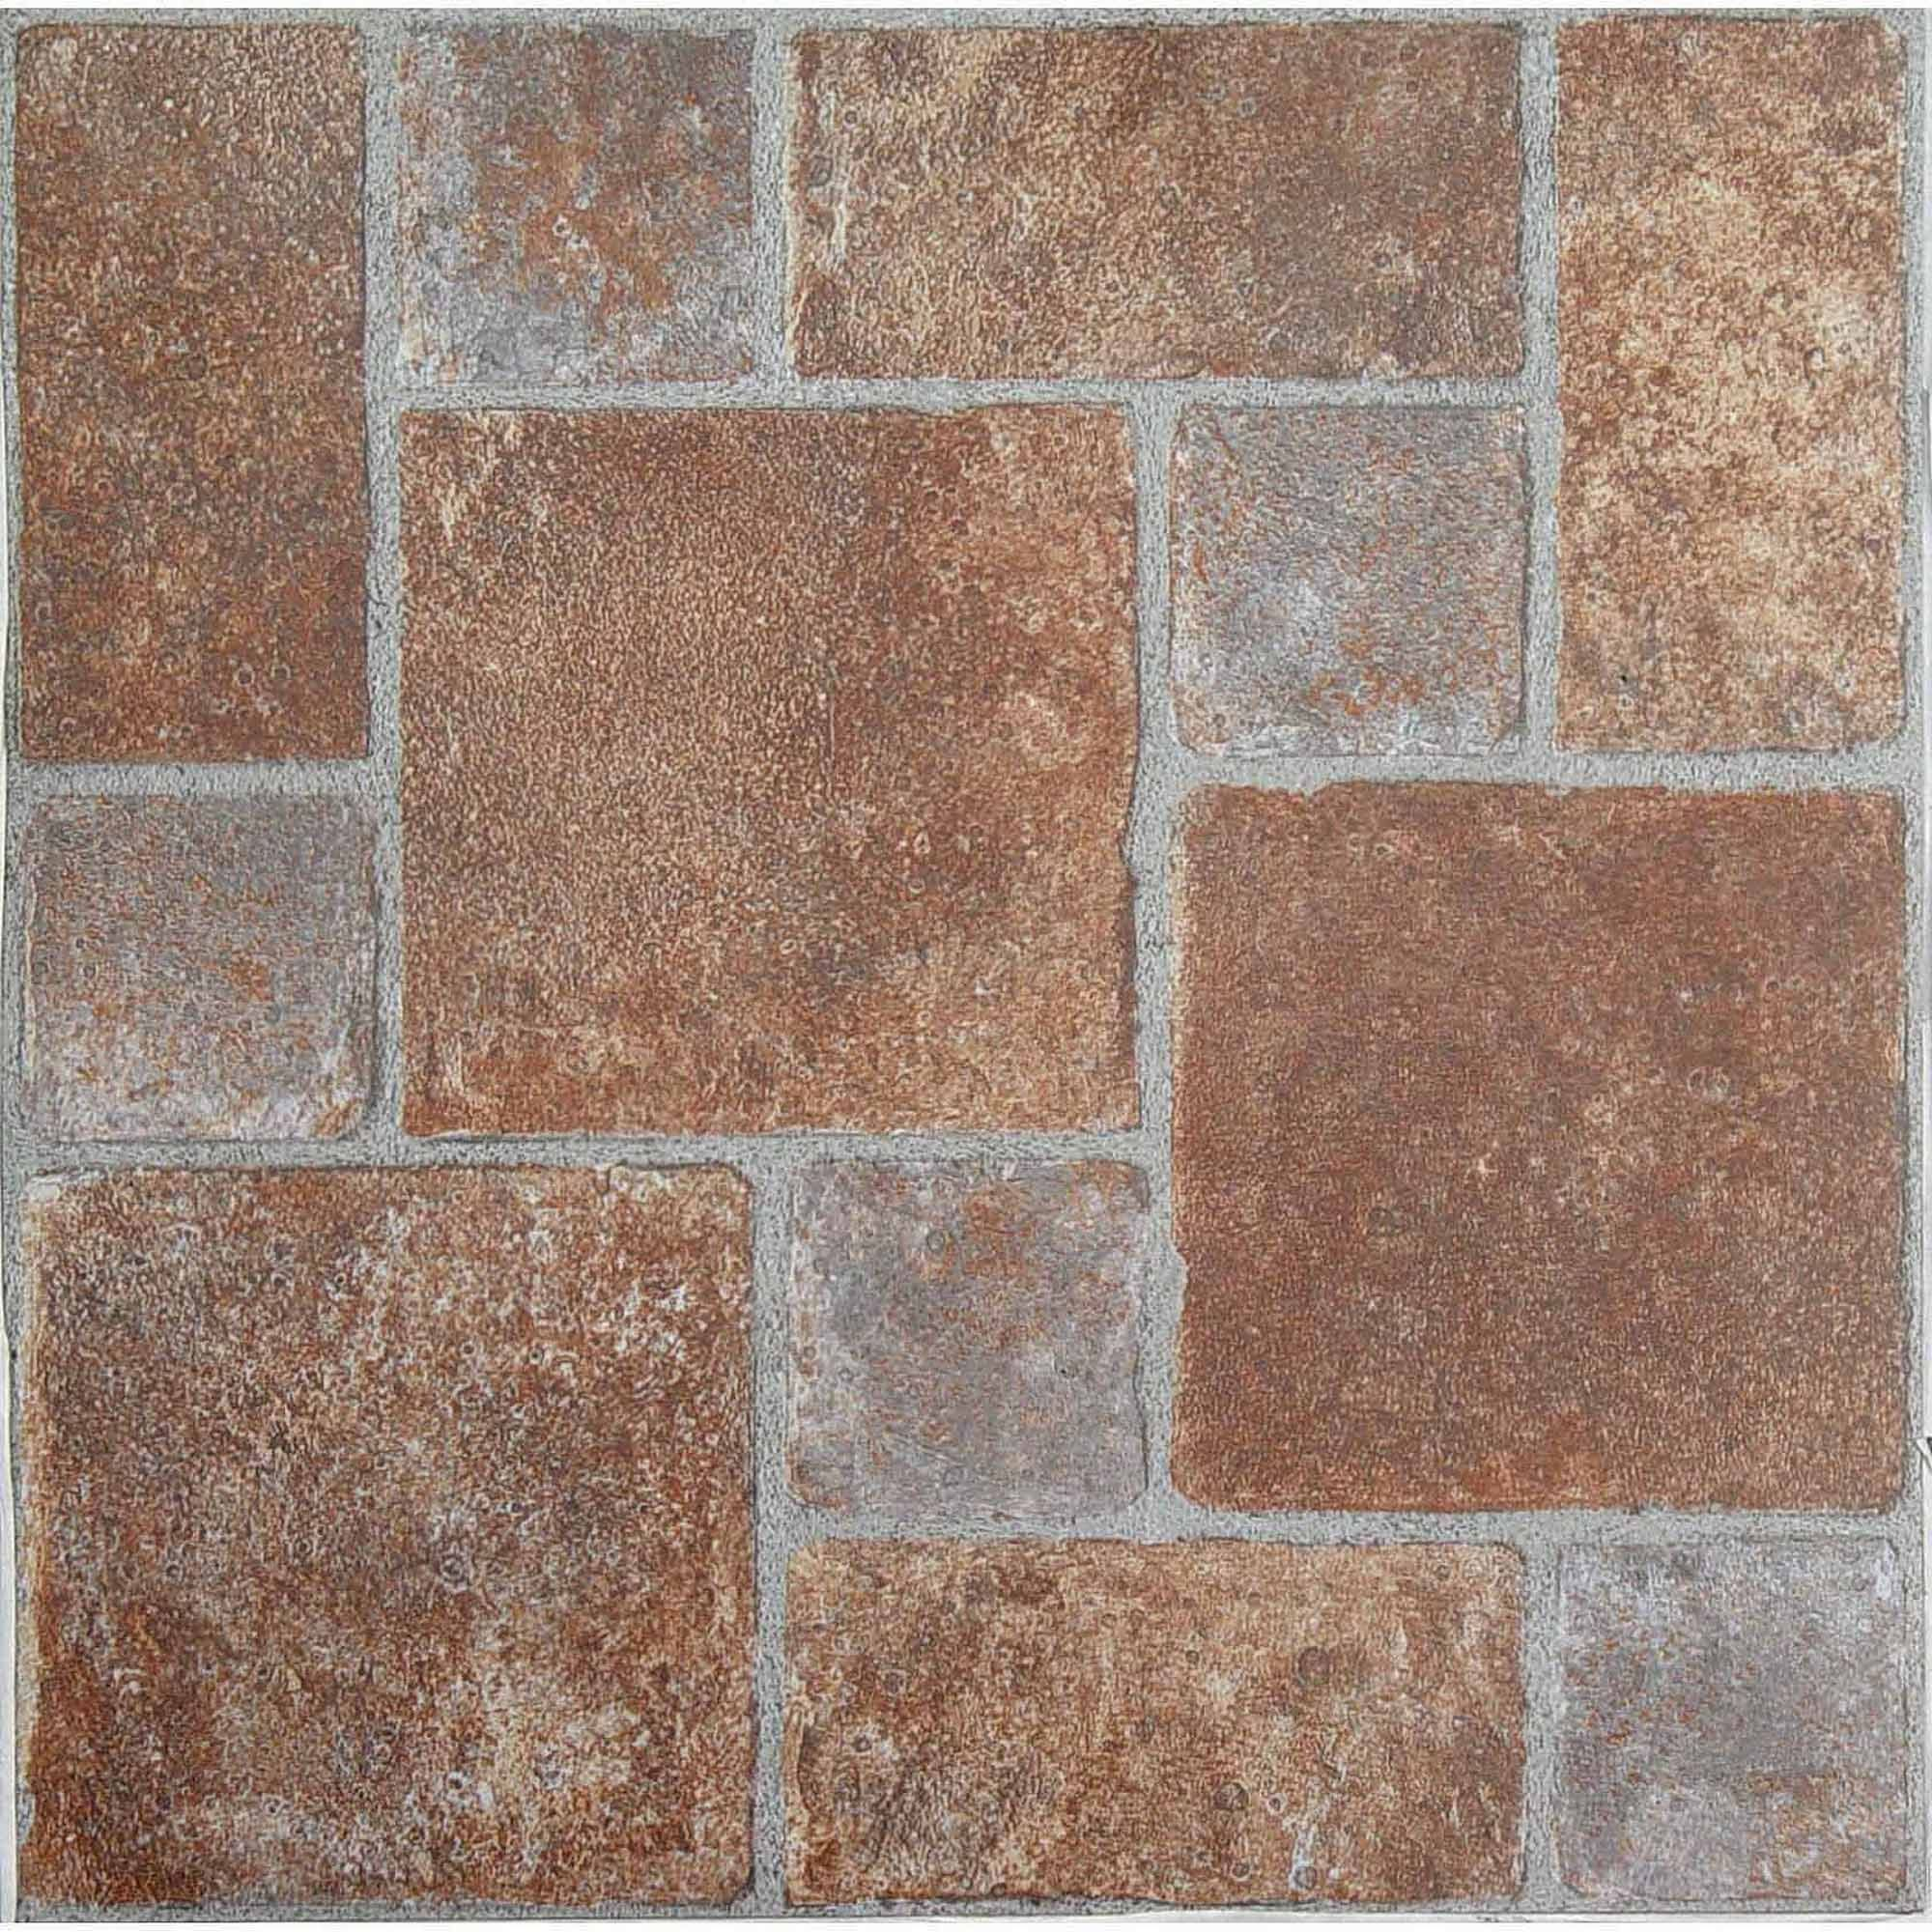 Peel And Stick Floor Tiles Home Hardware Httpnextsoftcom - How thick should porcelain floor tile be